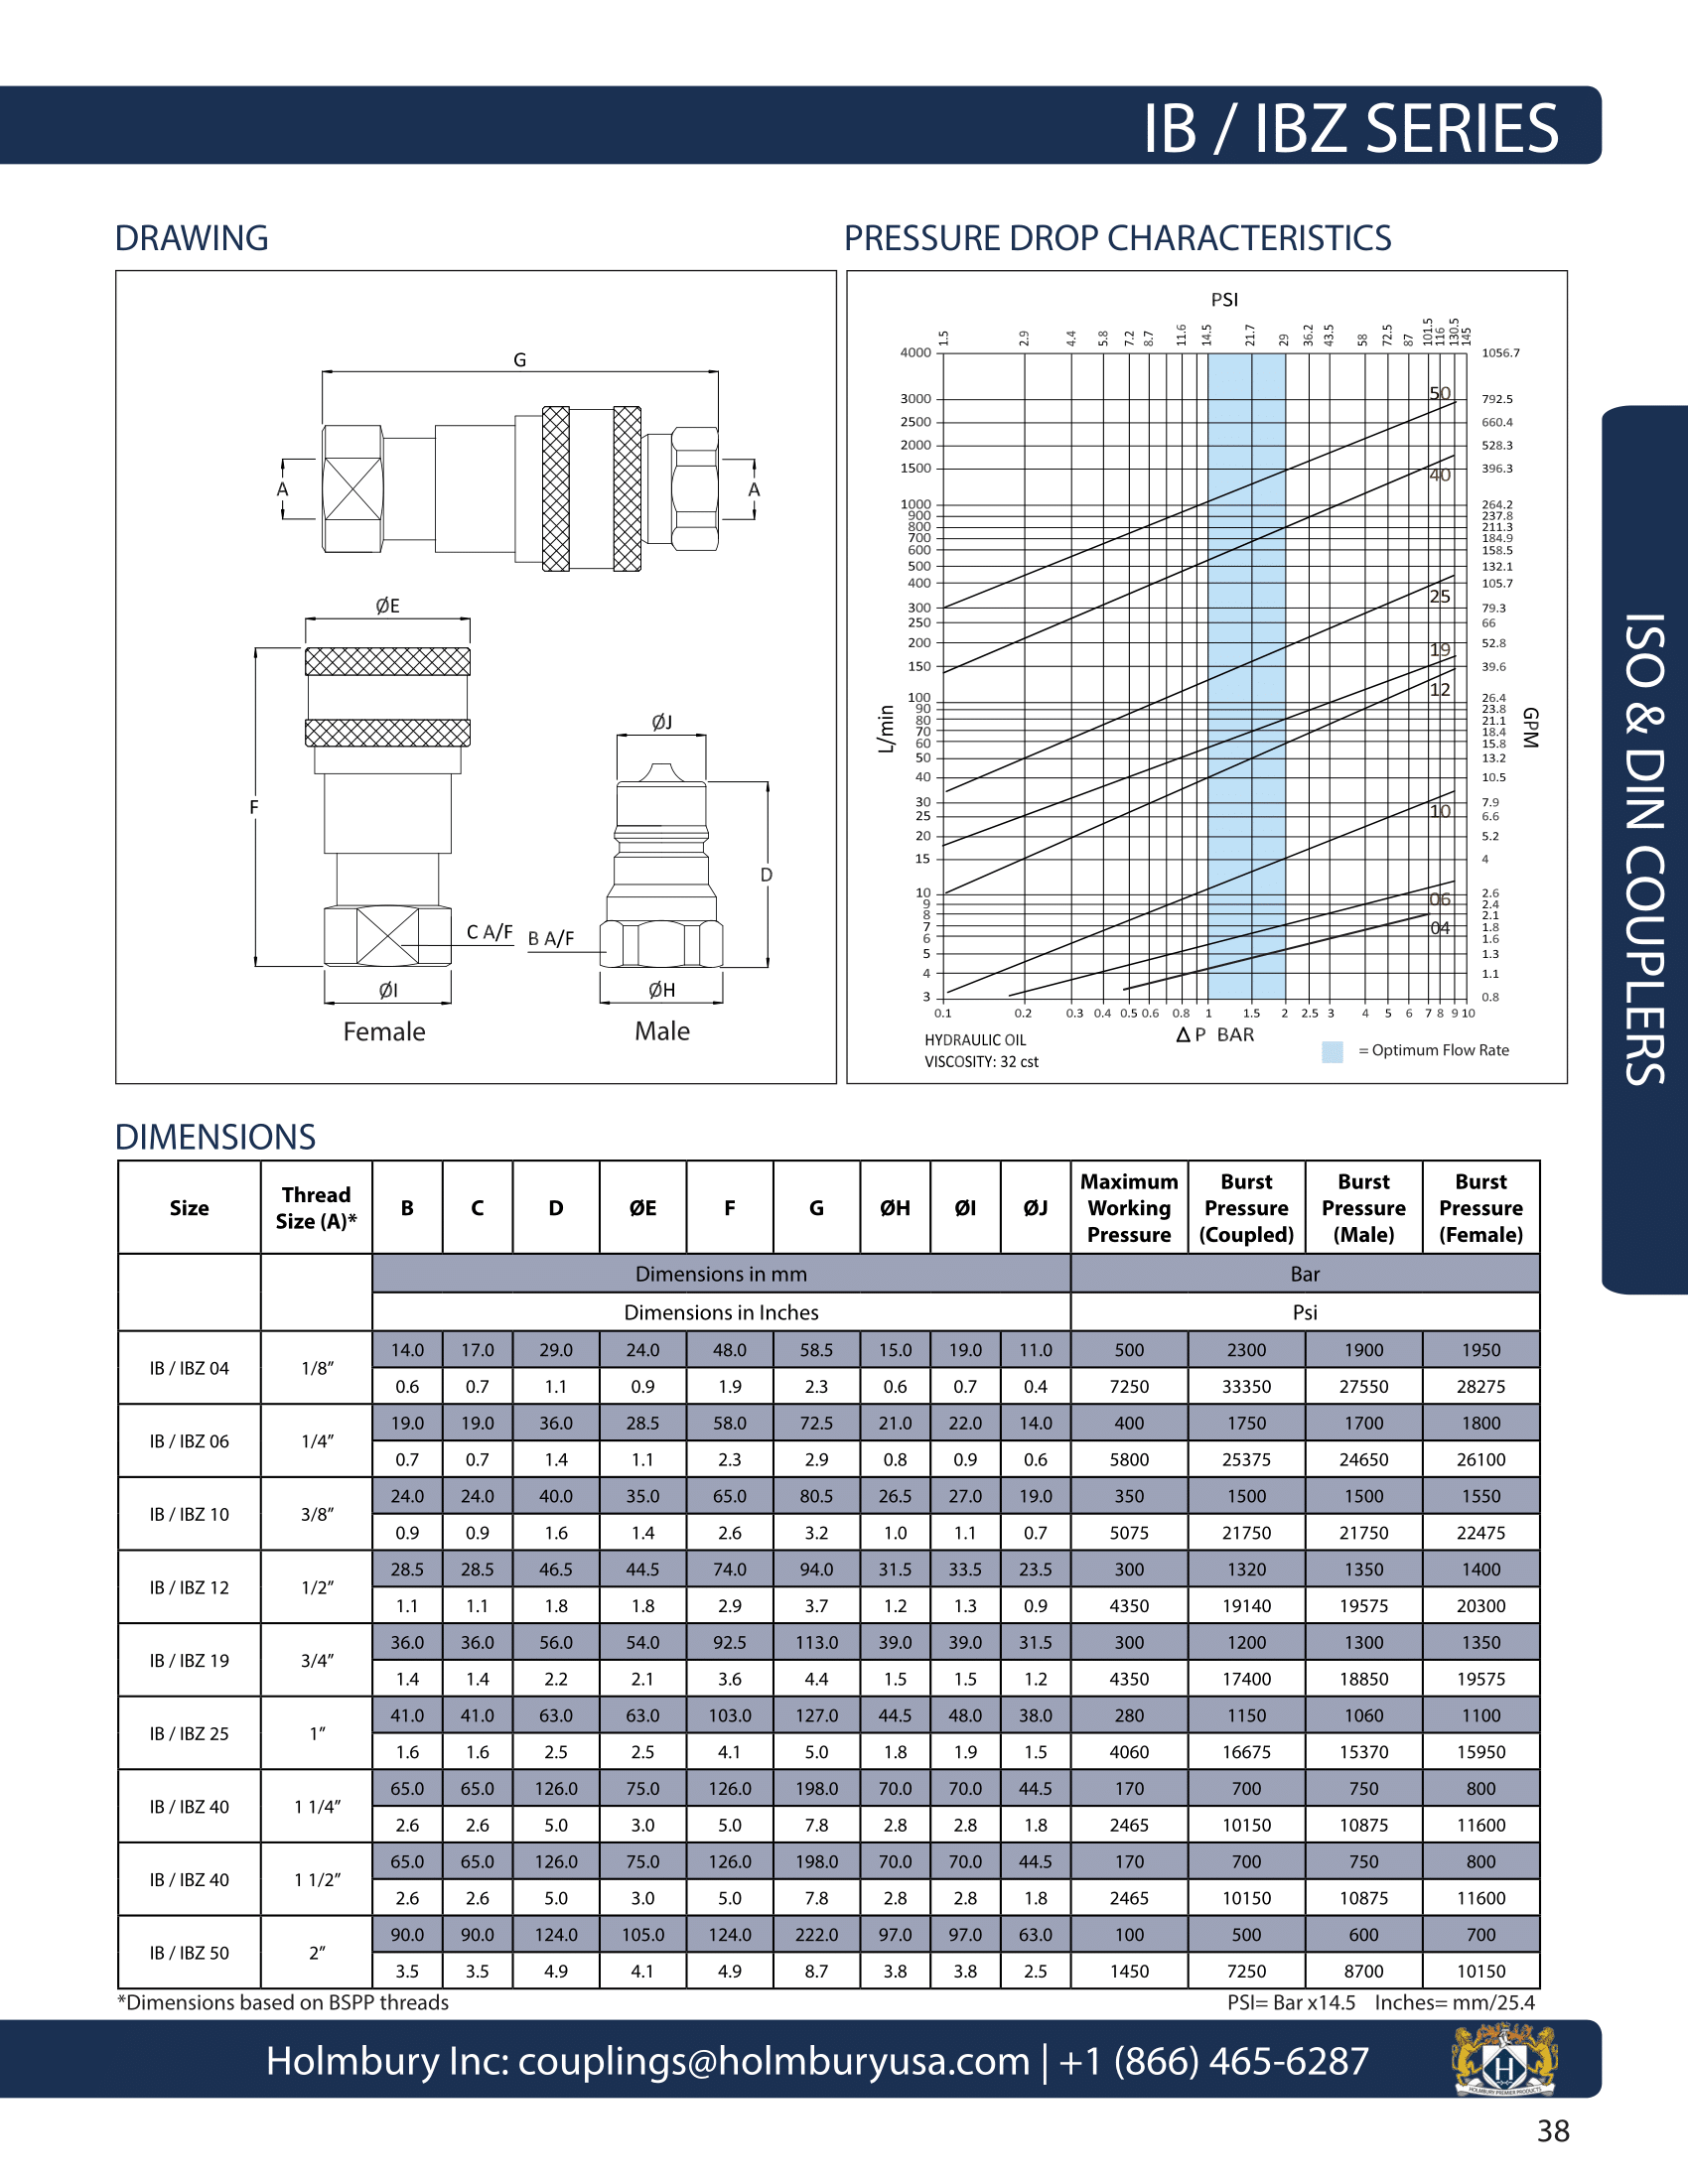 https://parts.hydraulicworld.com/image/catalog/quick%20couplers/IB%20SPEC%20SHEET-1.png